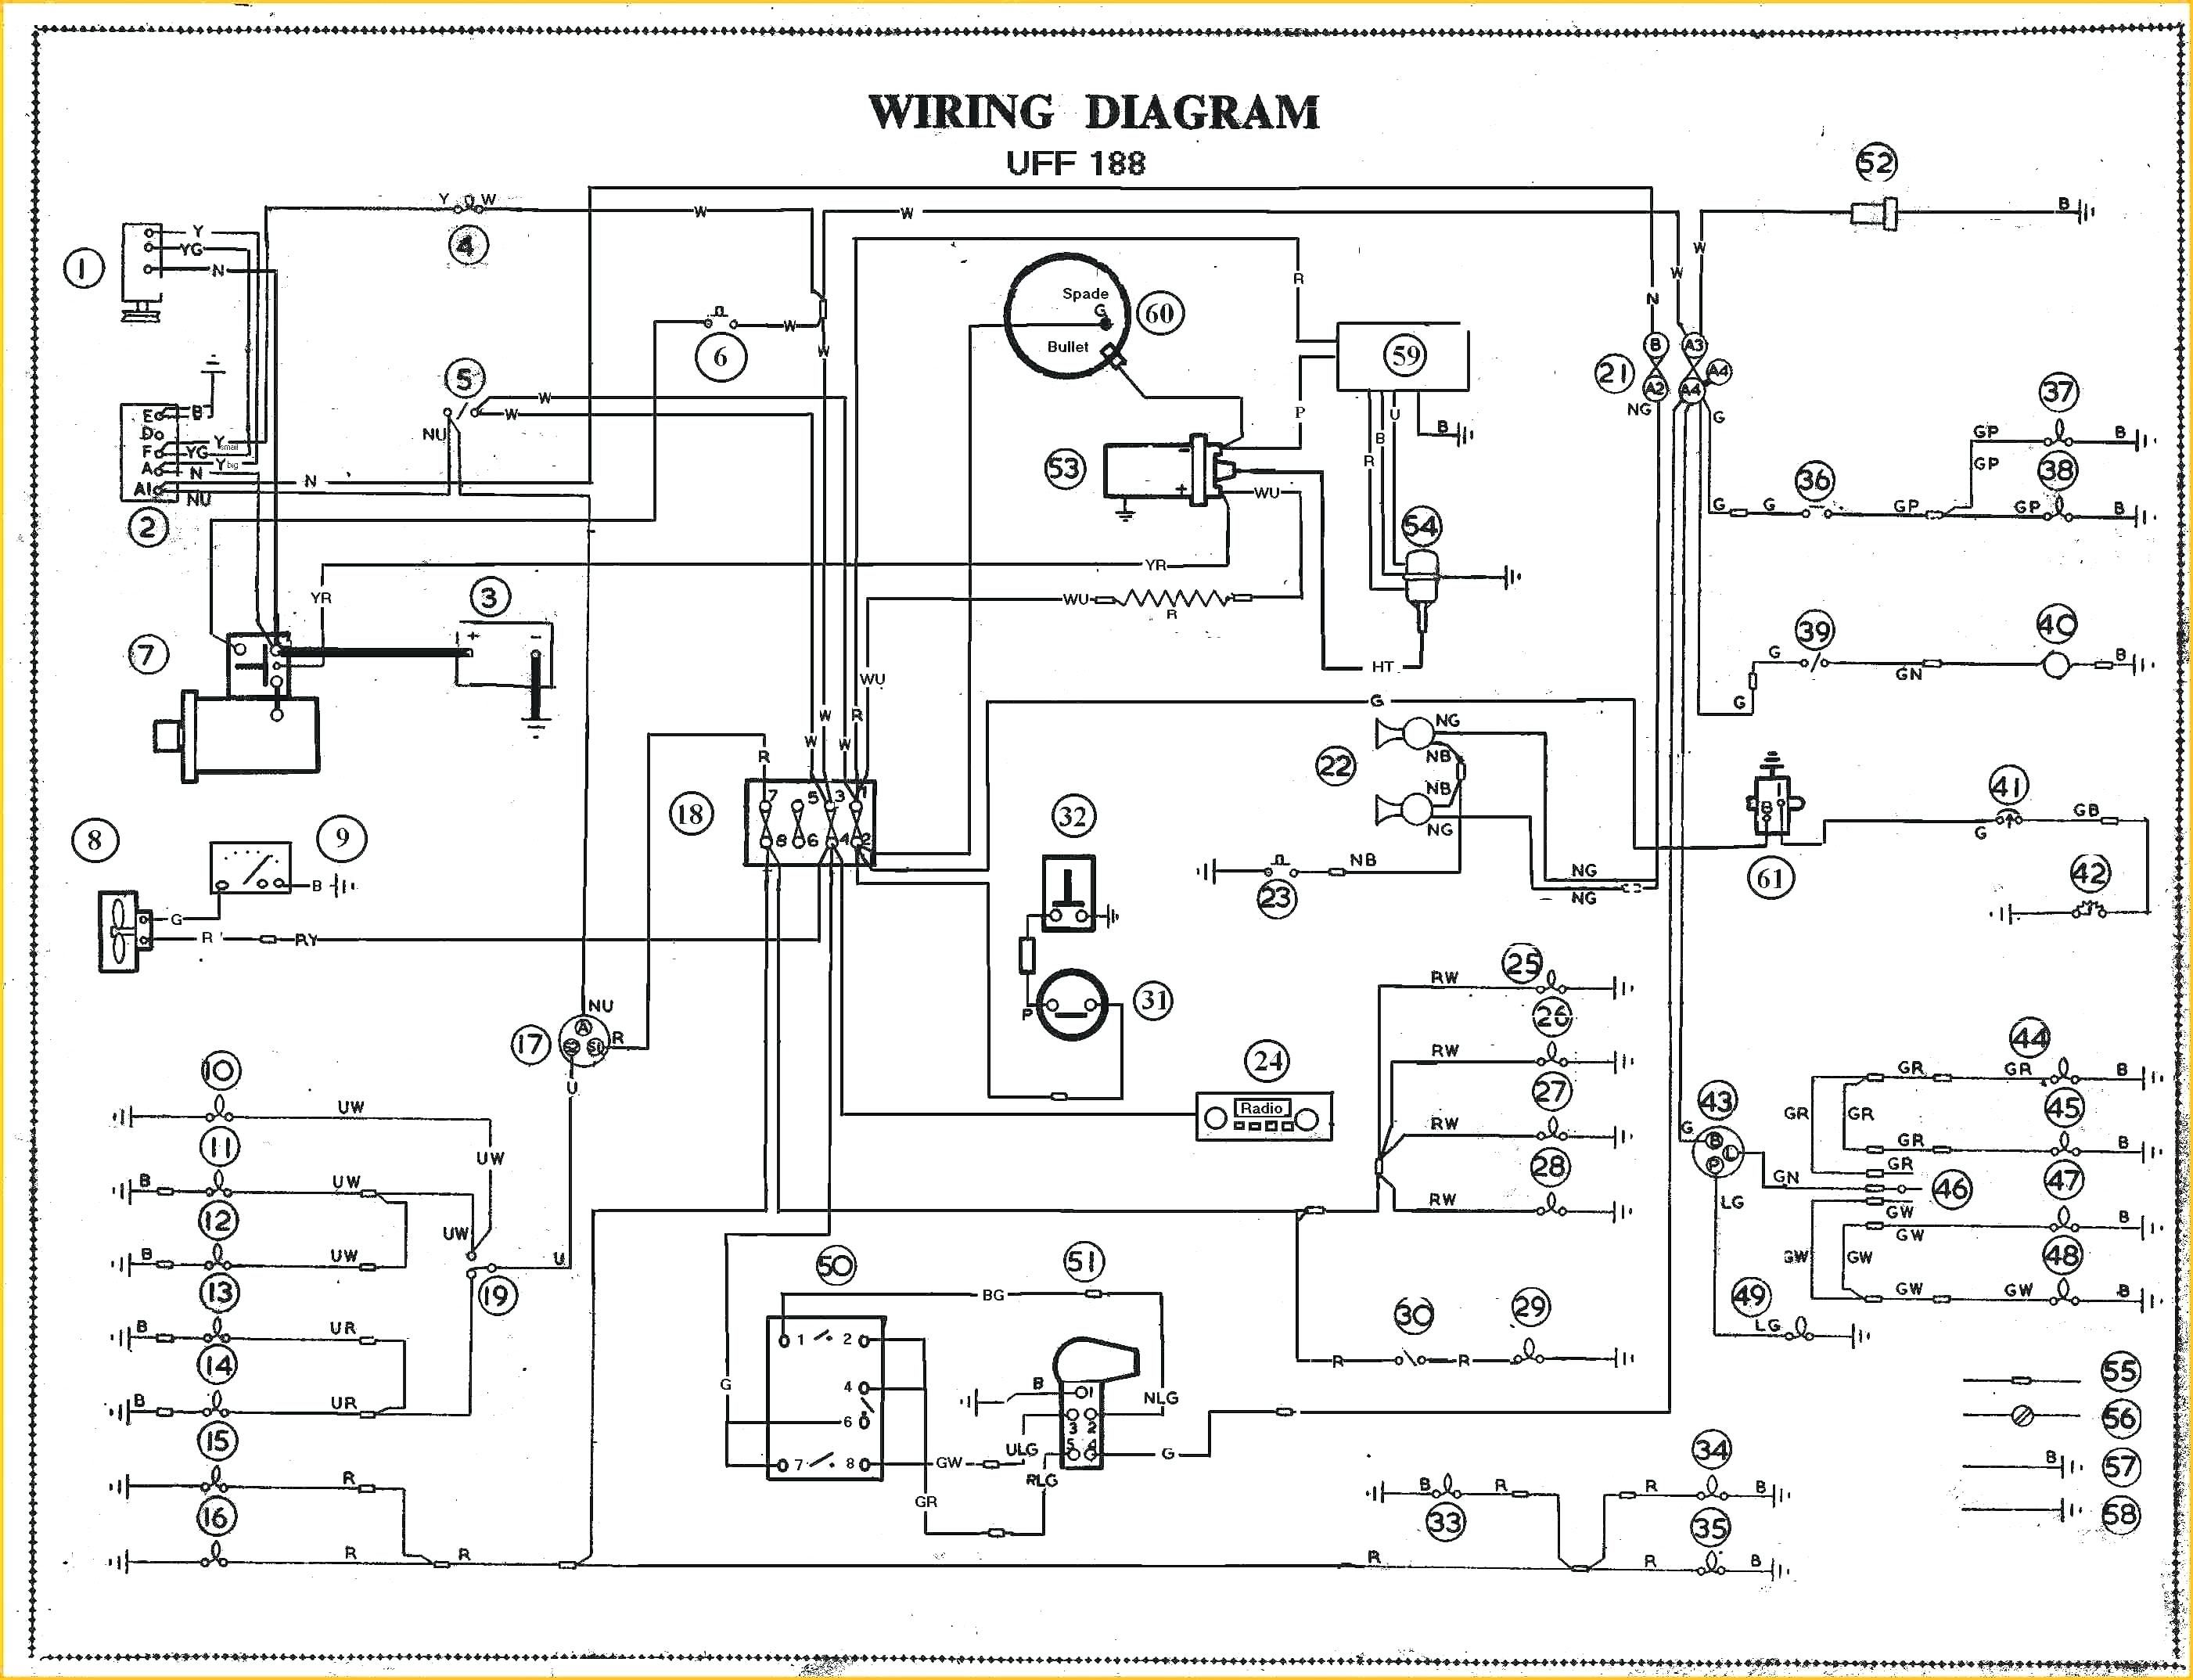 [DIAGRAM_5UK]  Basic Hvac Wiring Diagrams Schematics At Diagram Pdf | Diagram, Diagram  design, Alternator | Wiring Diagram Or Schematic |  | Pinterest